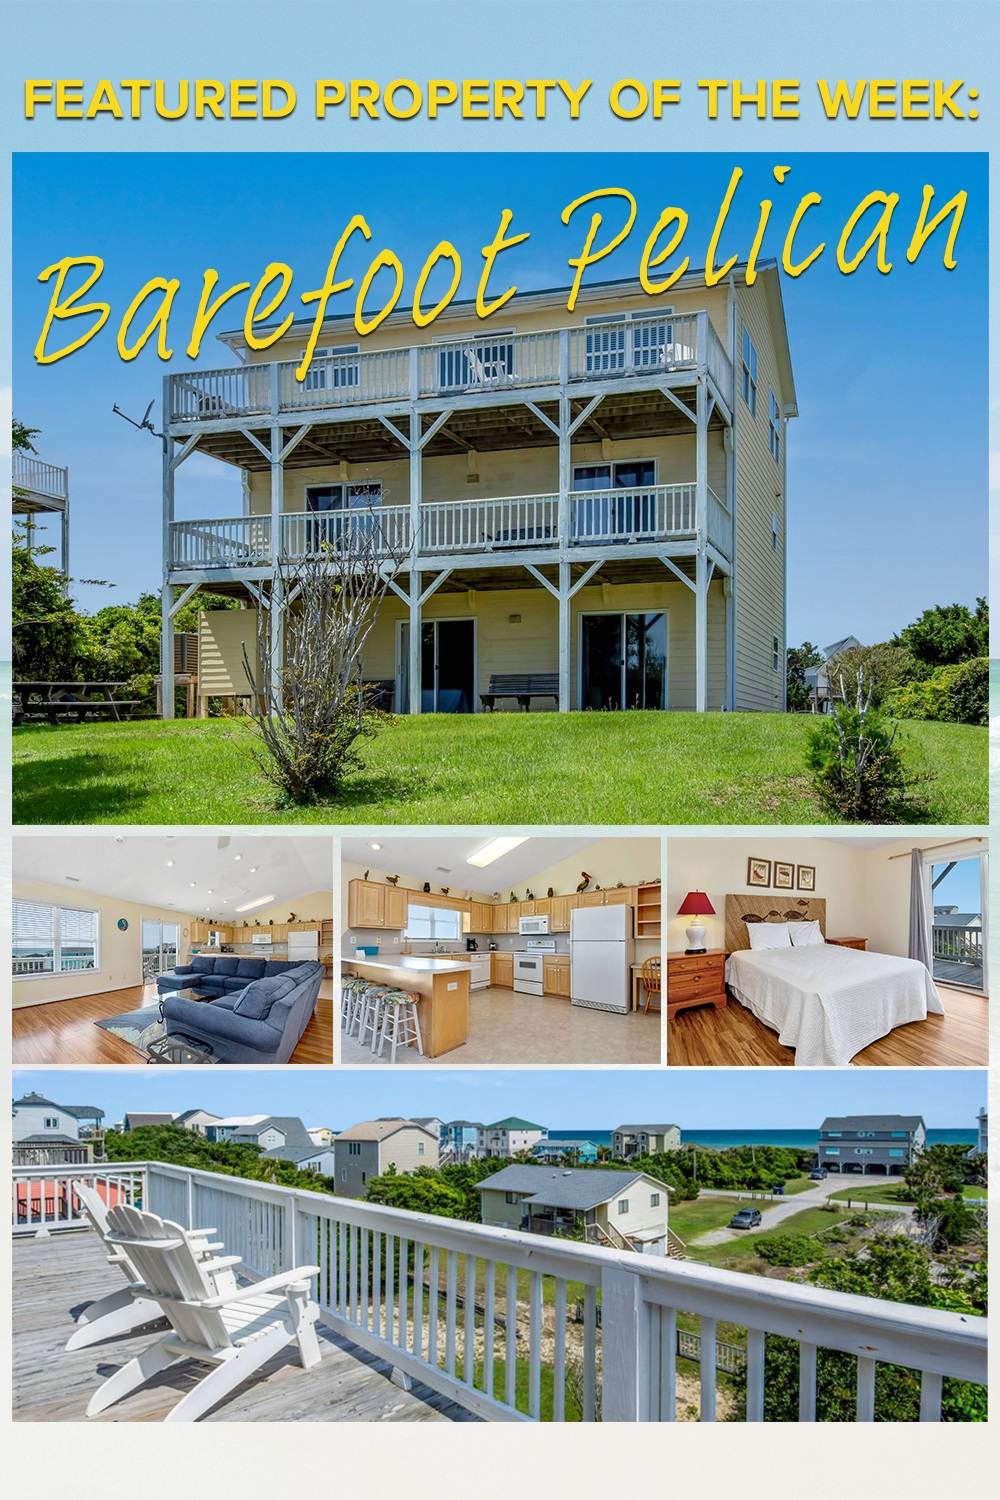 Barefoot Pelican - Emerald Isle Realty Featured Property of the Week